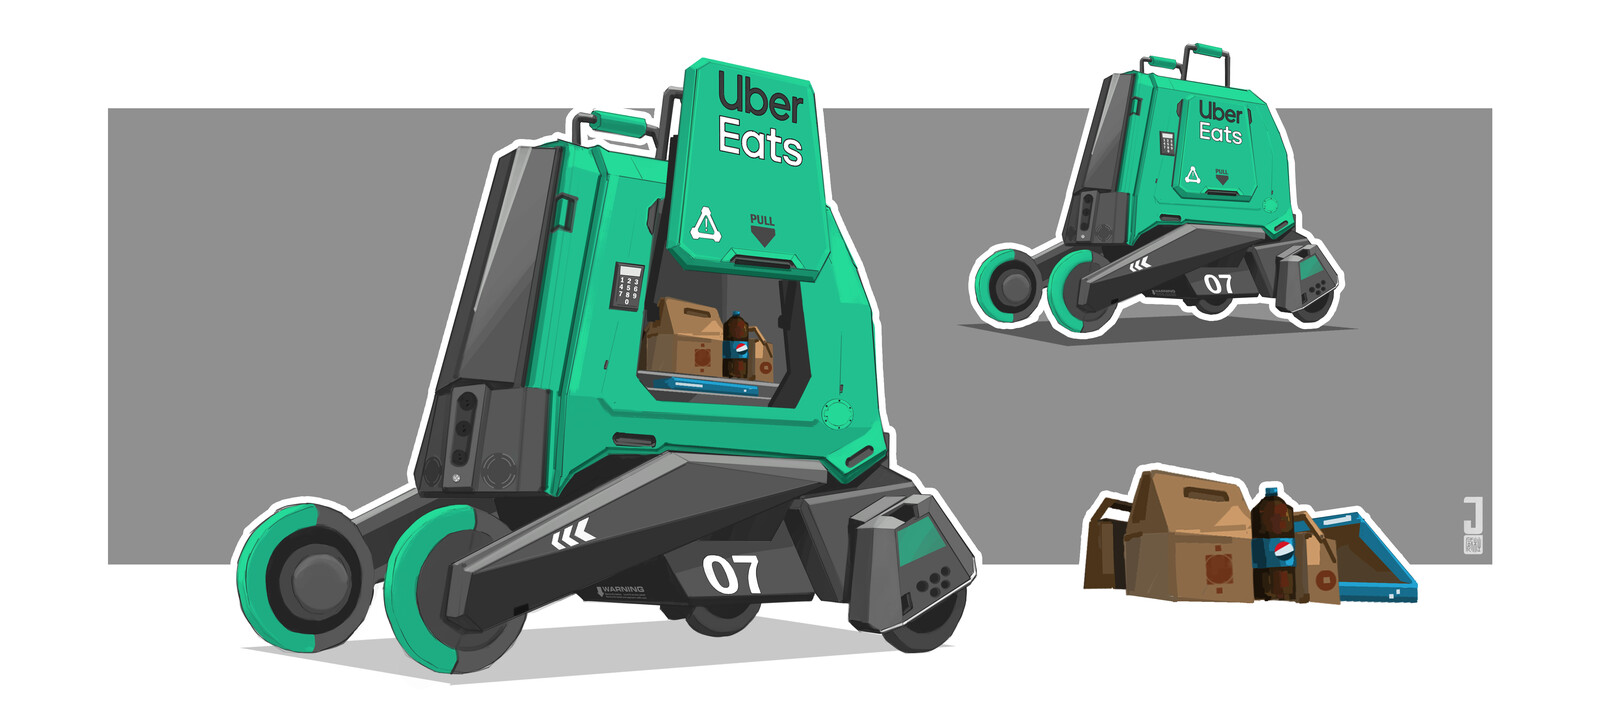 Automated food delivery concept